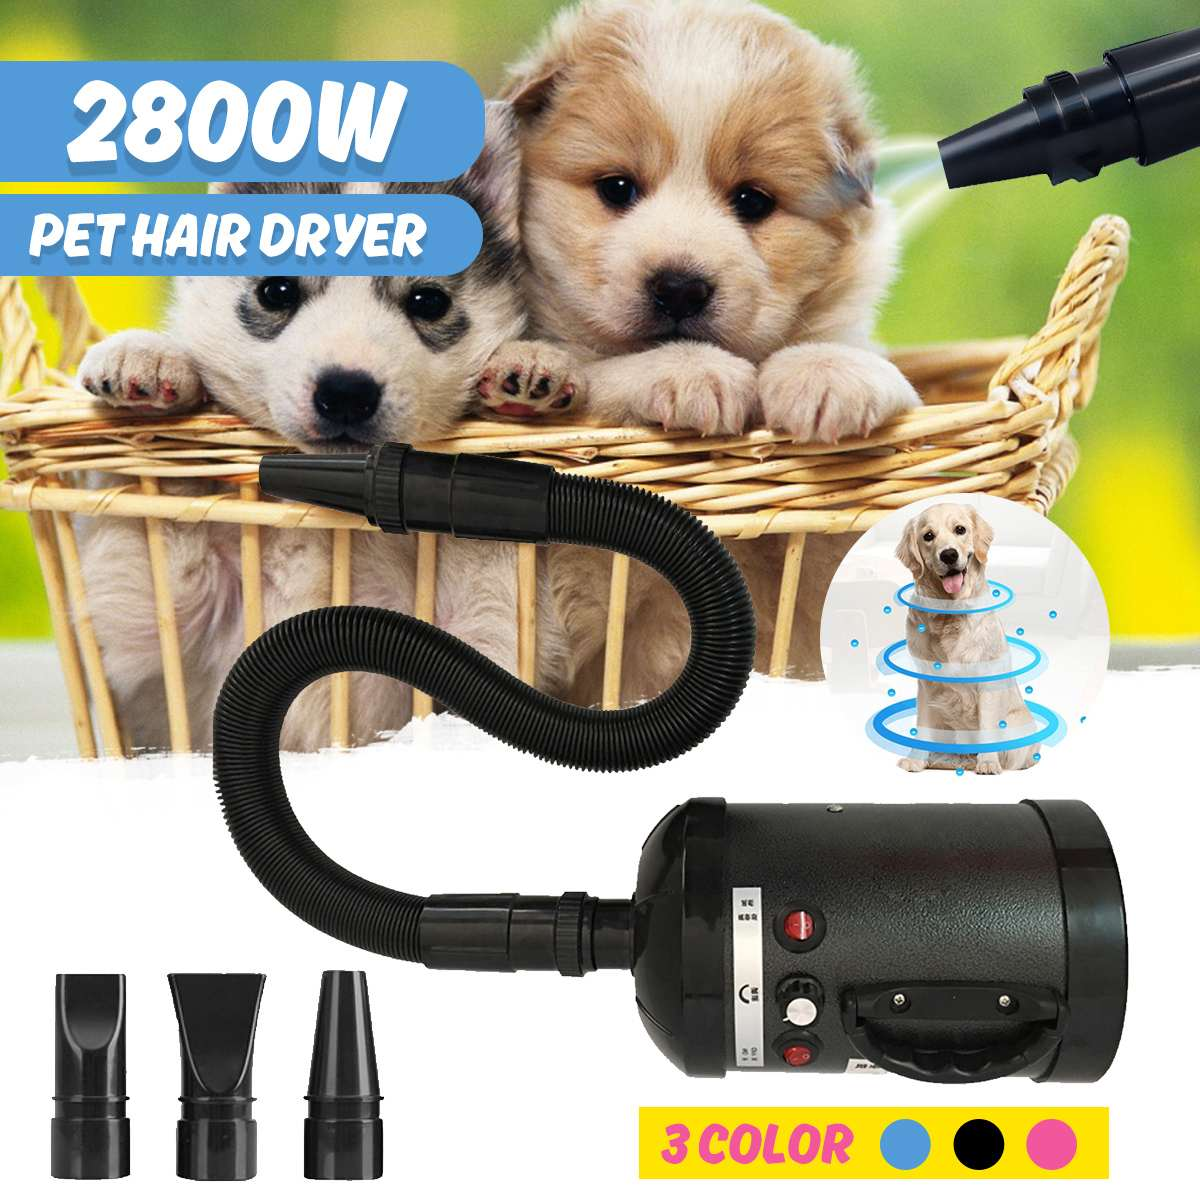 3 Color Eu Plug 2800W font b Pet b font Dryer Blower Adjustable Dog Grooming Dryer